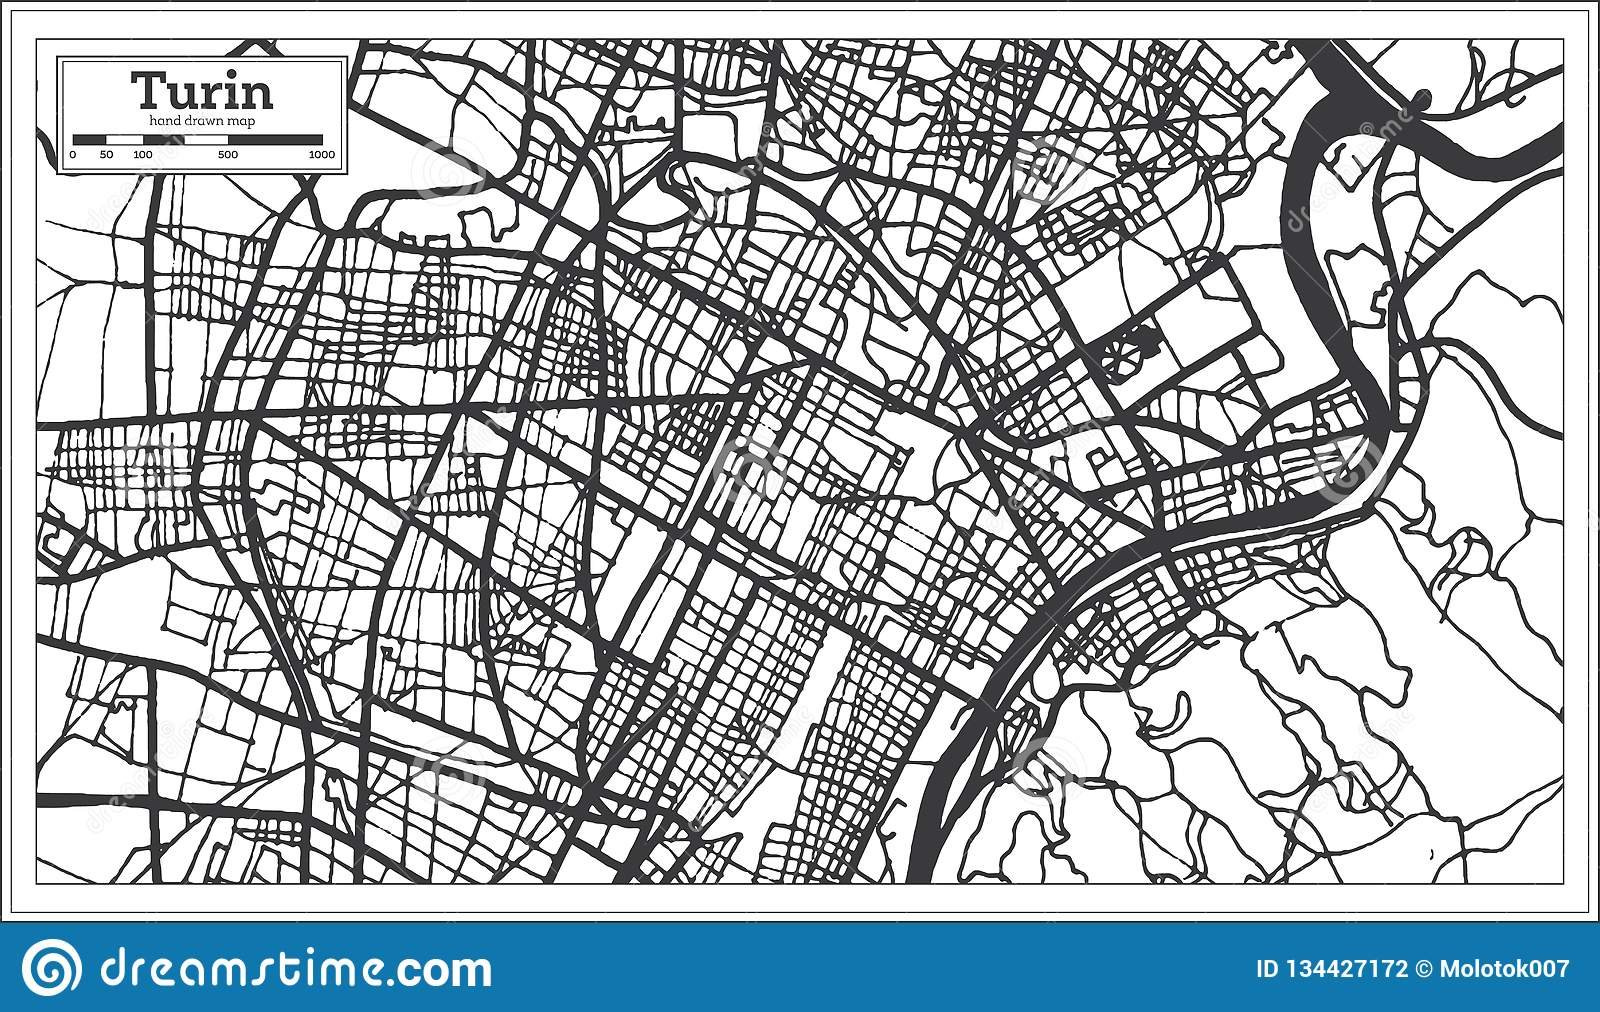 Turin Italy City Map In Retro Style Outline Map Stock Vector